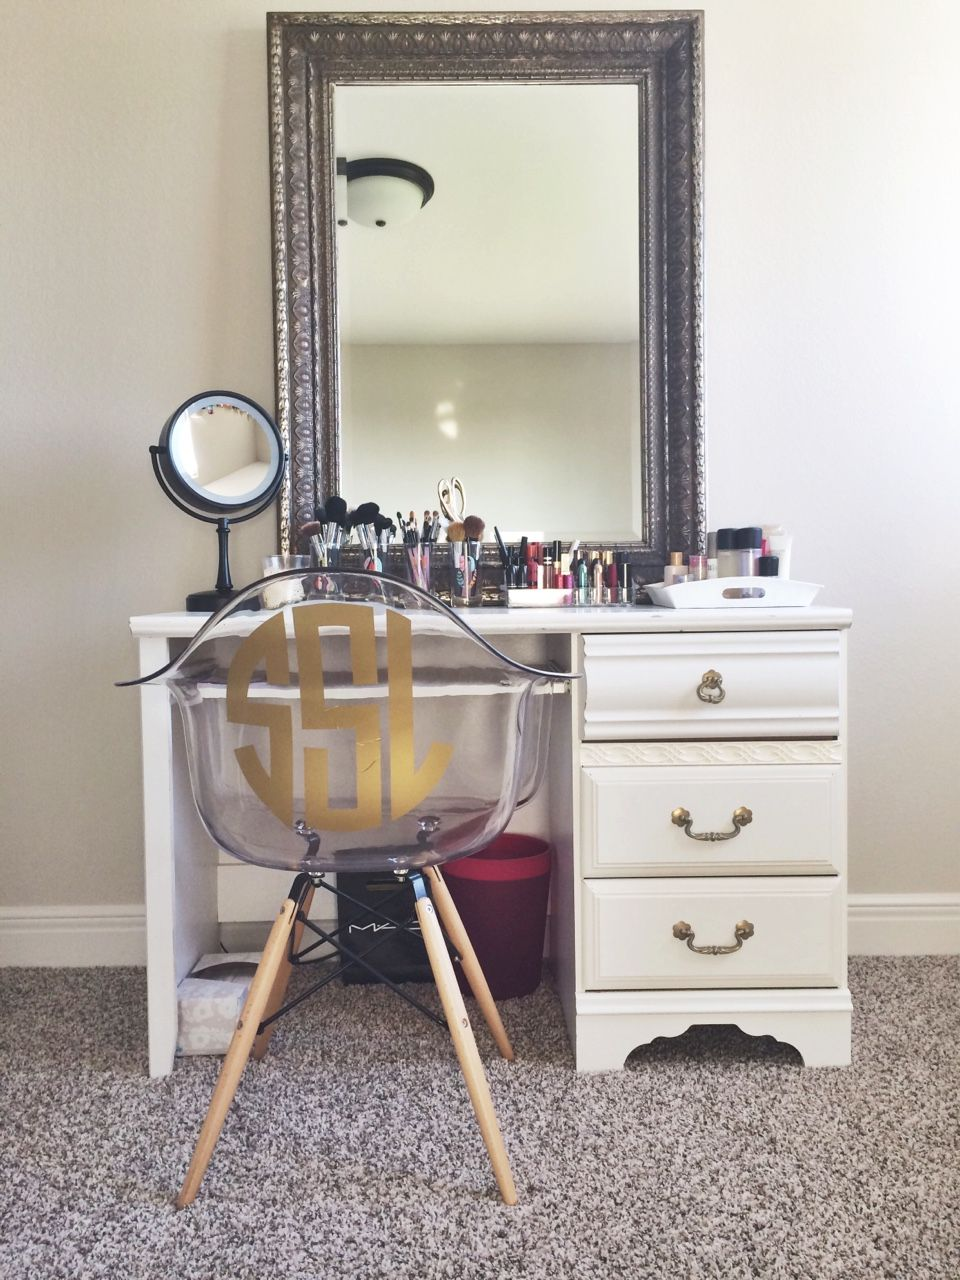 I would love to have this iuve always wanted a makeup table with a